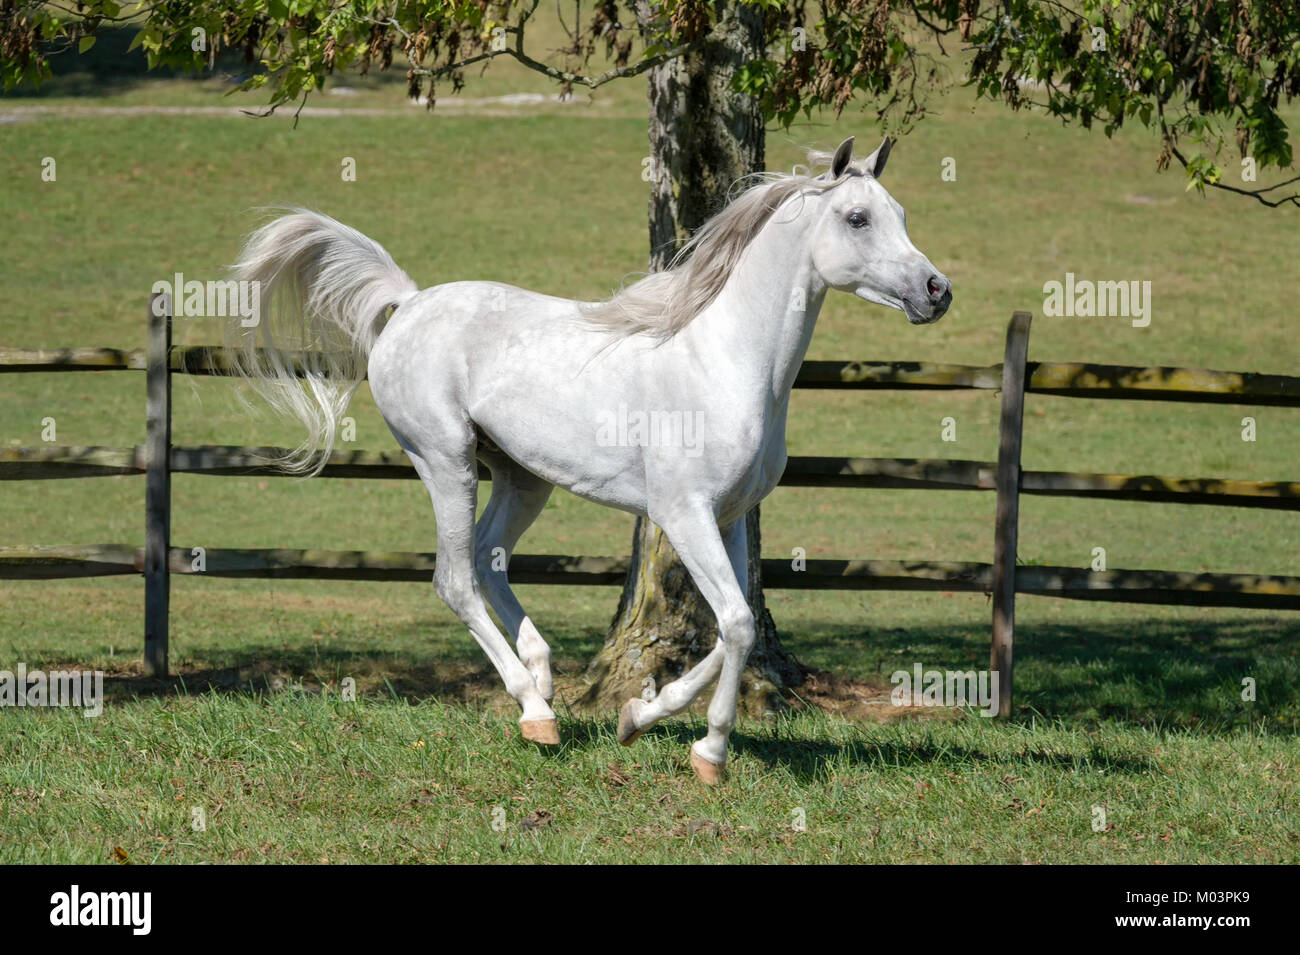 Horse running in collected trot while flagging tail, side view of a very beautiful white Arabian stallion in motion. - Stock Image